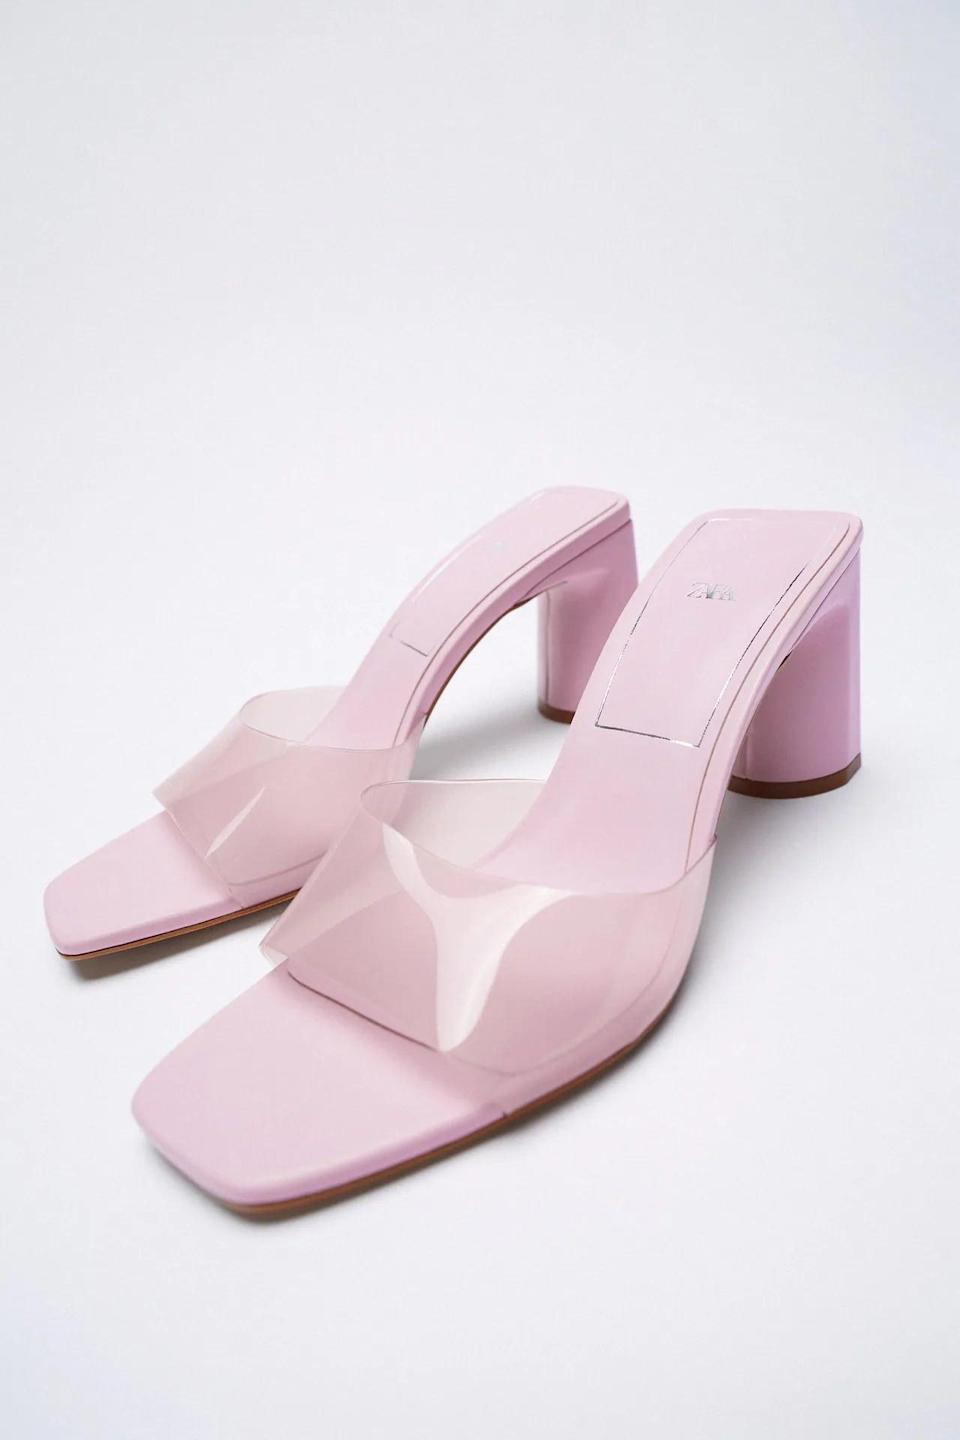 <p>These <span>Zara Wide Heeled Vinyl Sandals</span> ($50) are great summer shoes. They're the right heel height, enough to feel something but not sky high. They also come in a few different colors, but we like the pink because it's a seasonal staple.</p>